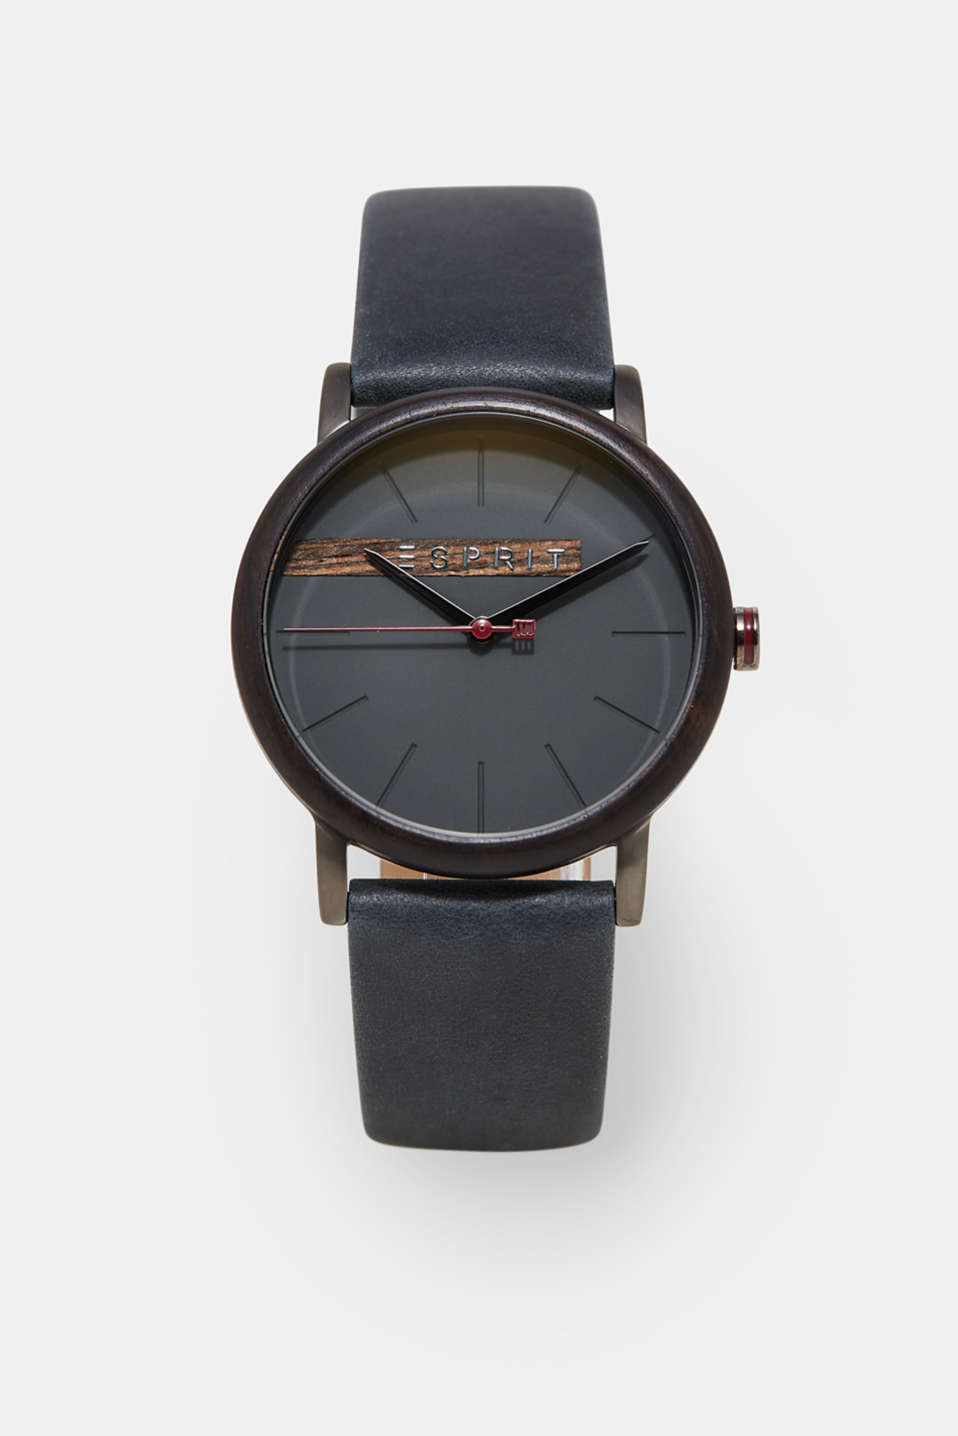 Esprit - Mens watch with a wooden bezel